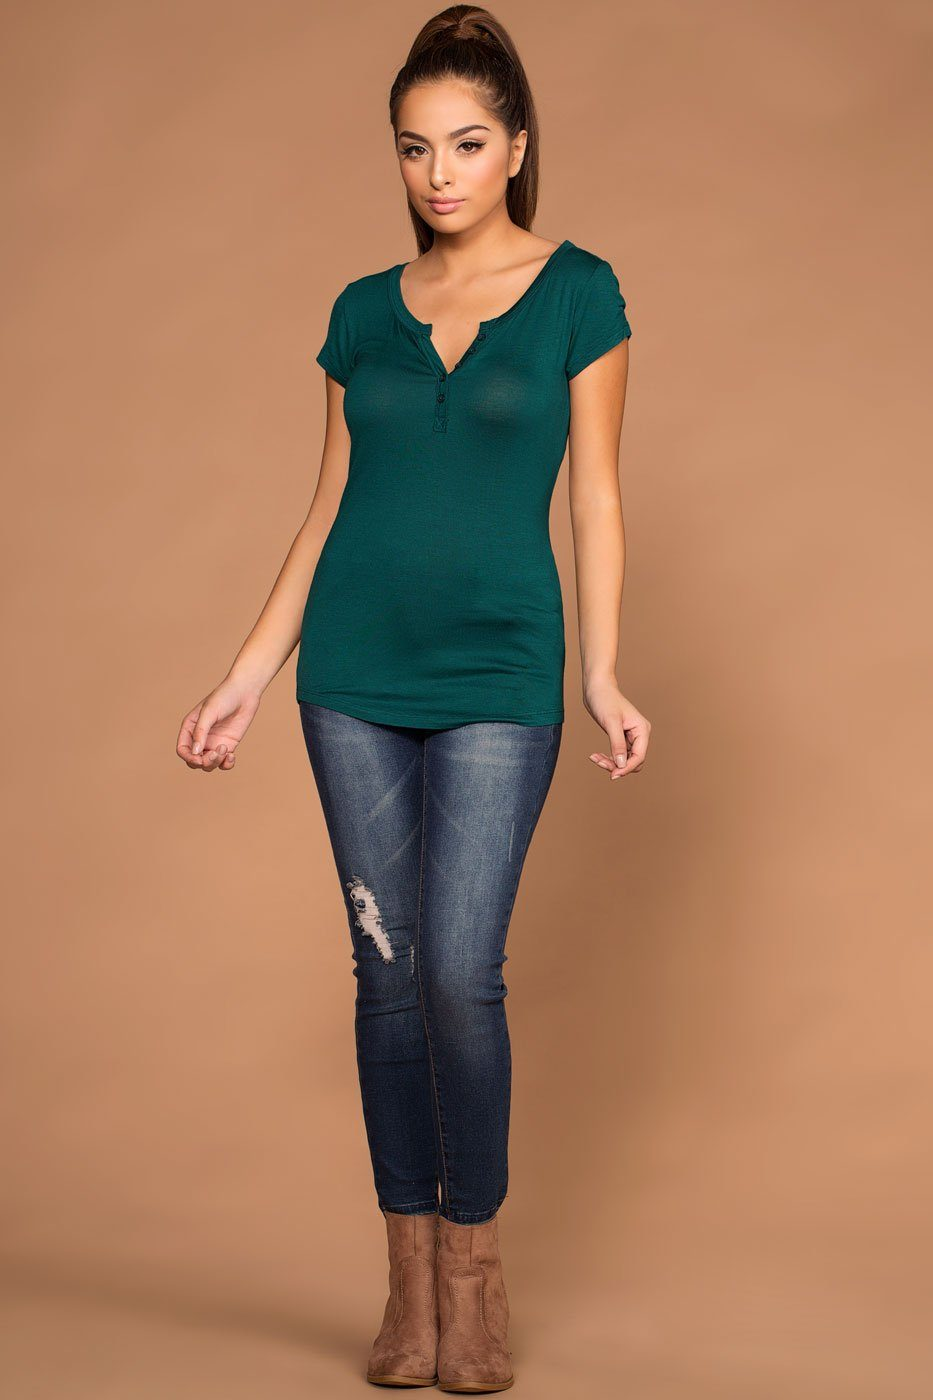 Lazy Days Teal Button Top | Active Basic